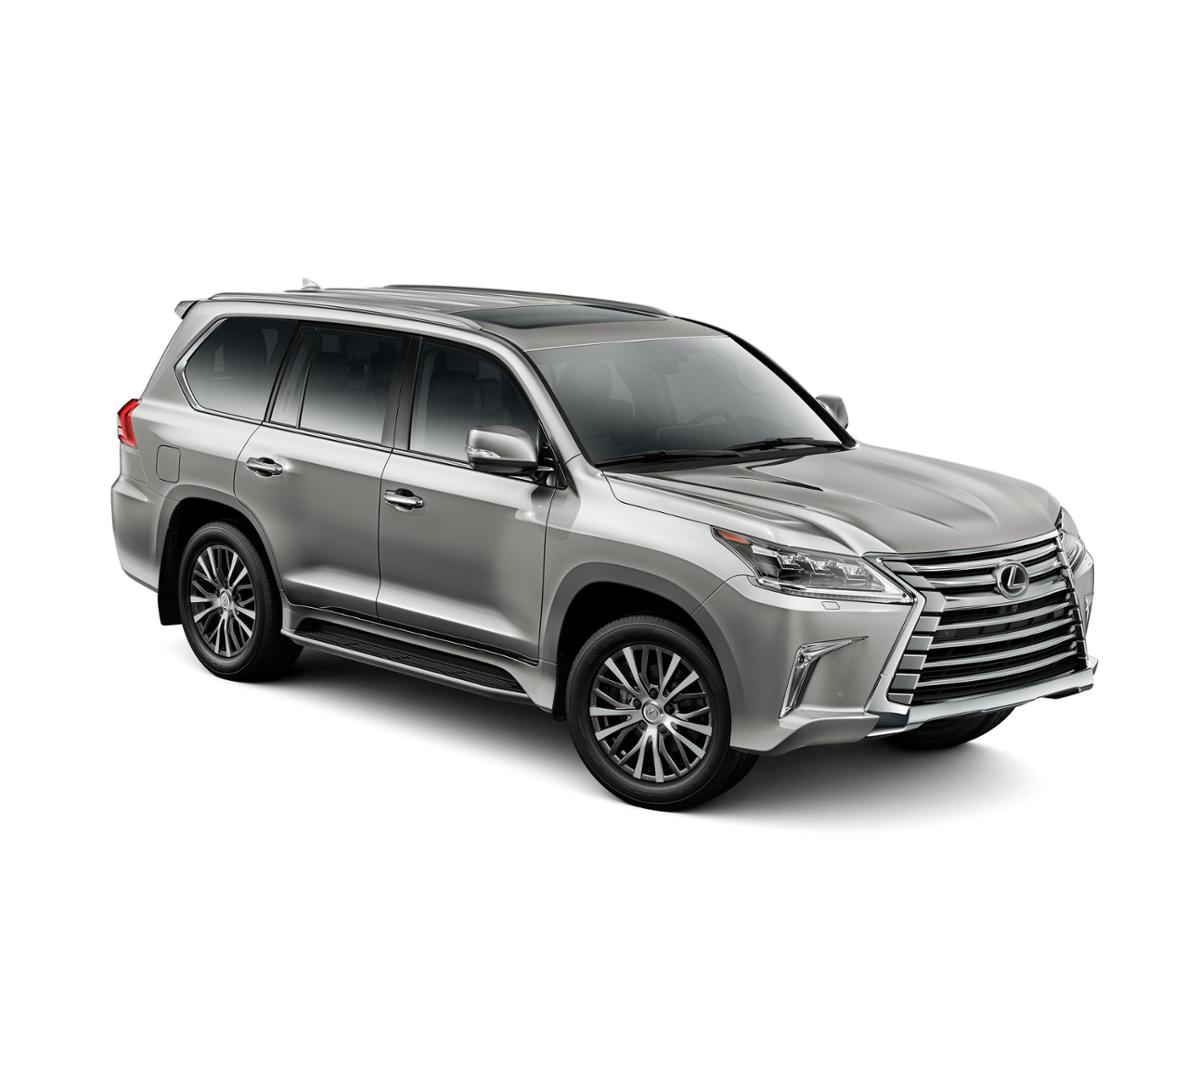 2019 Lexus LX 570 Vehicle Photo in Santa Barbara, CA 93105